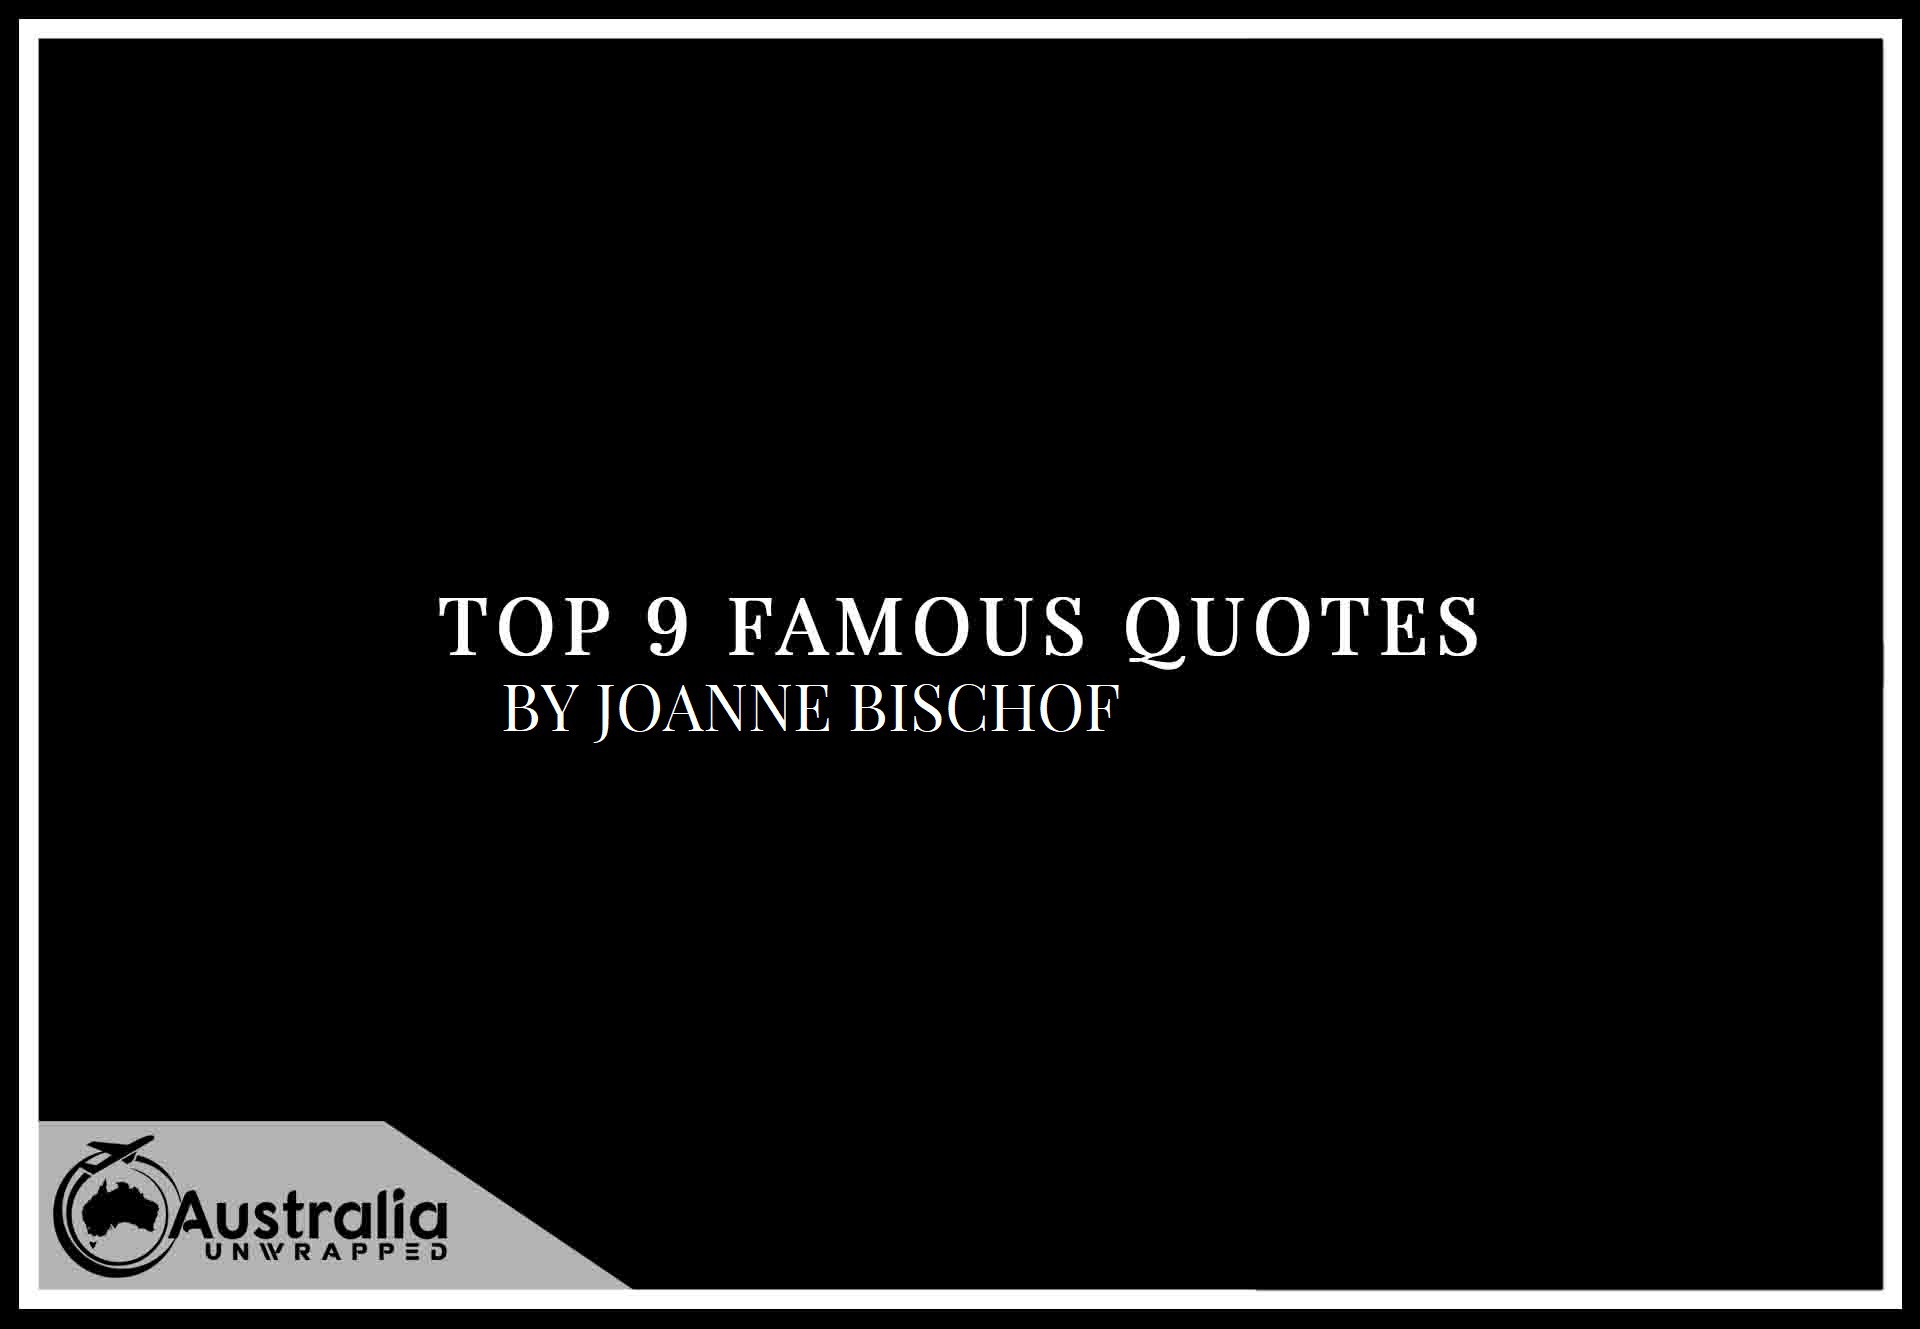 Top 9 Famous Quotes by Author Joanne Bischof